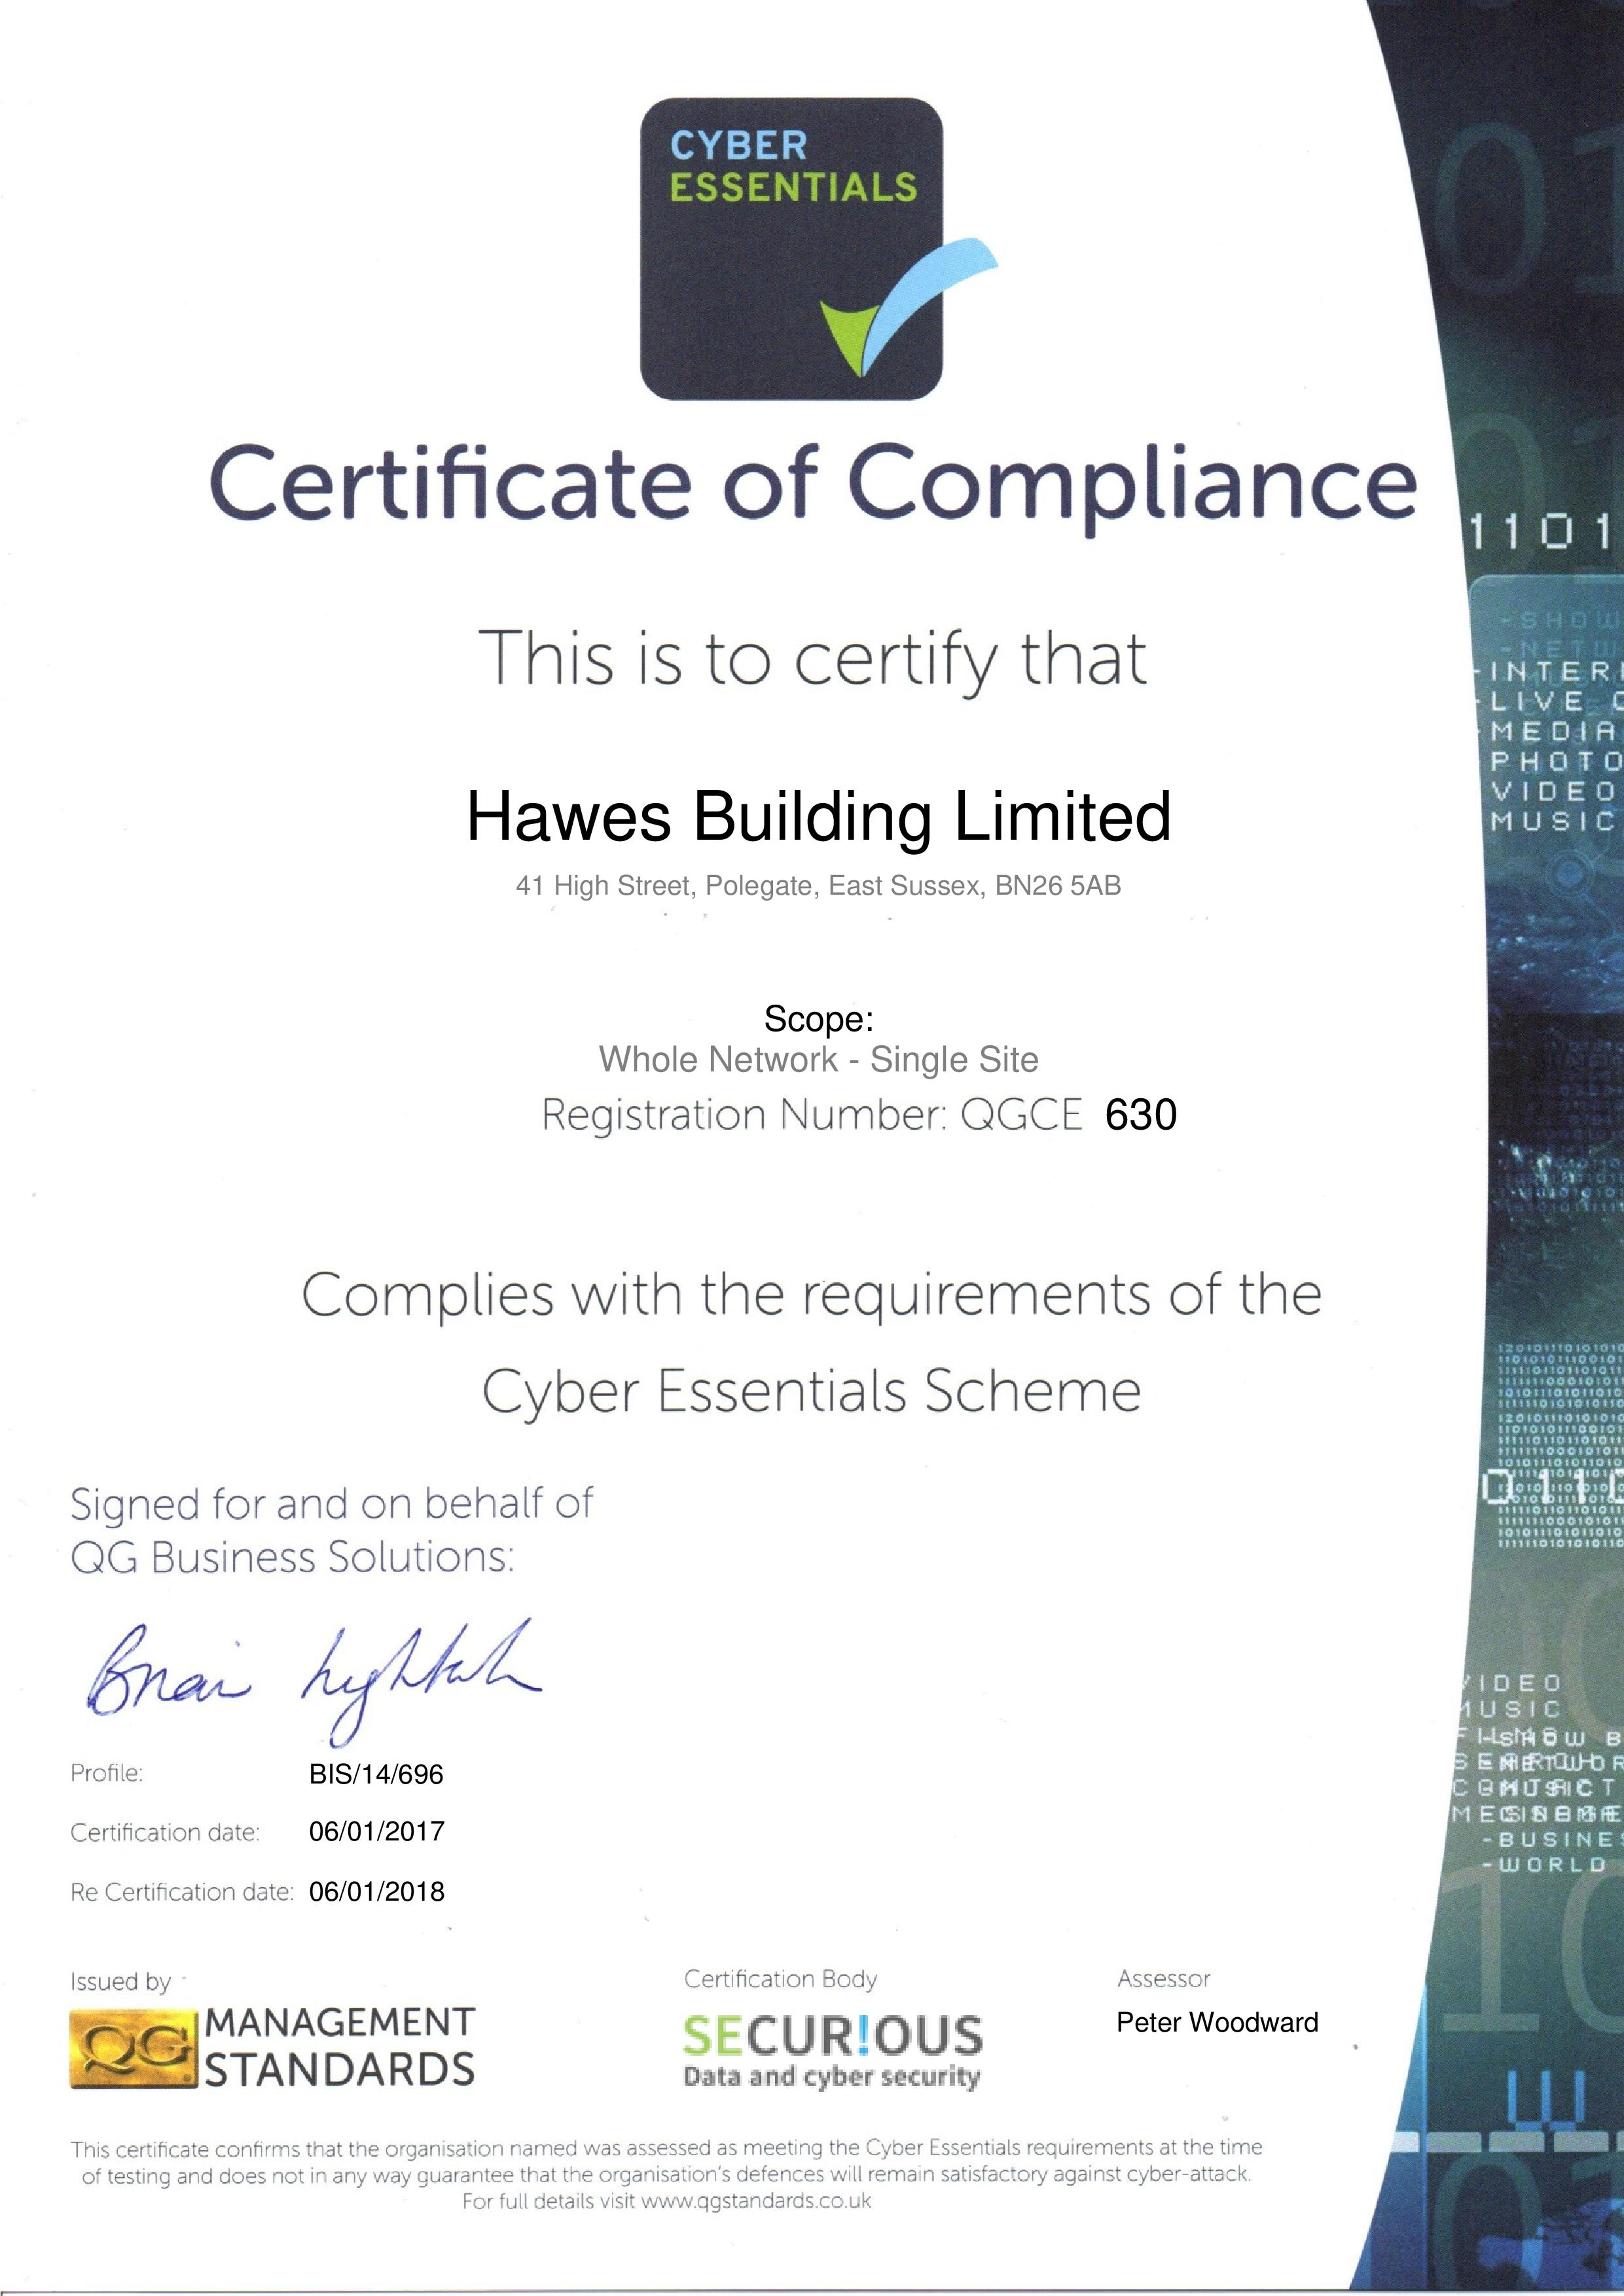 QGCE630 Hawes Building Limited